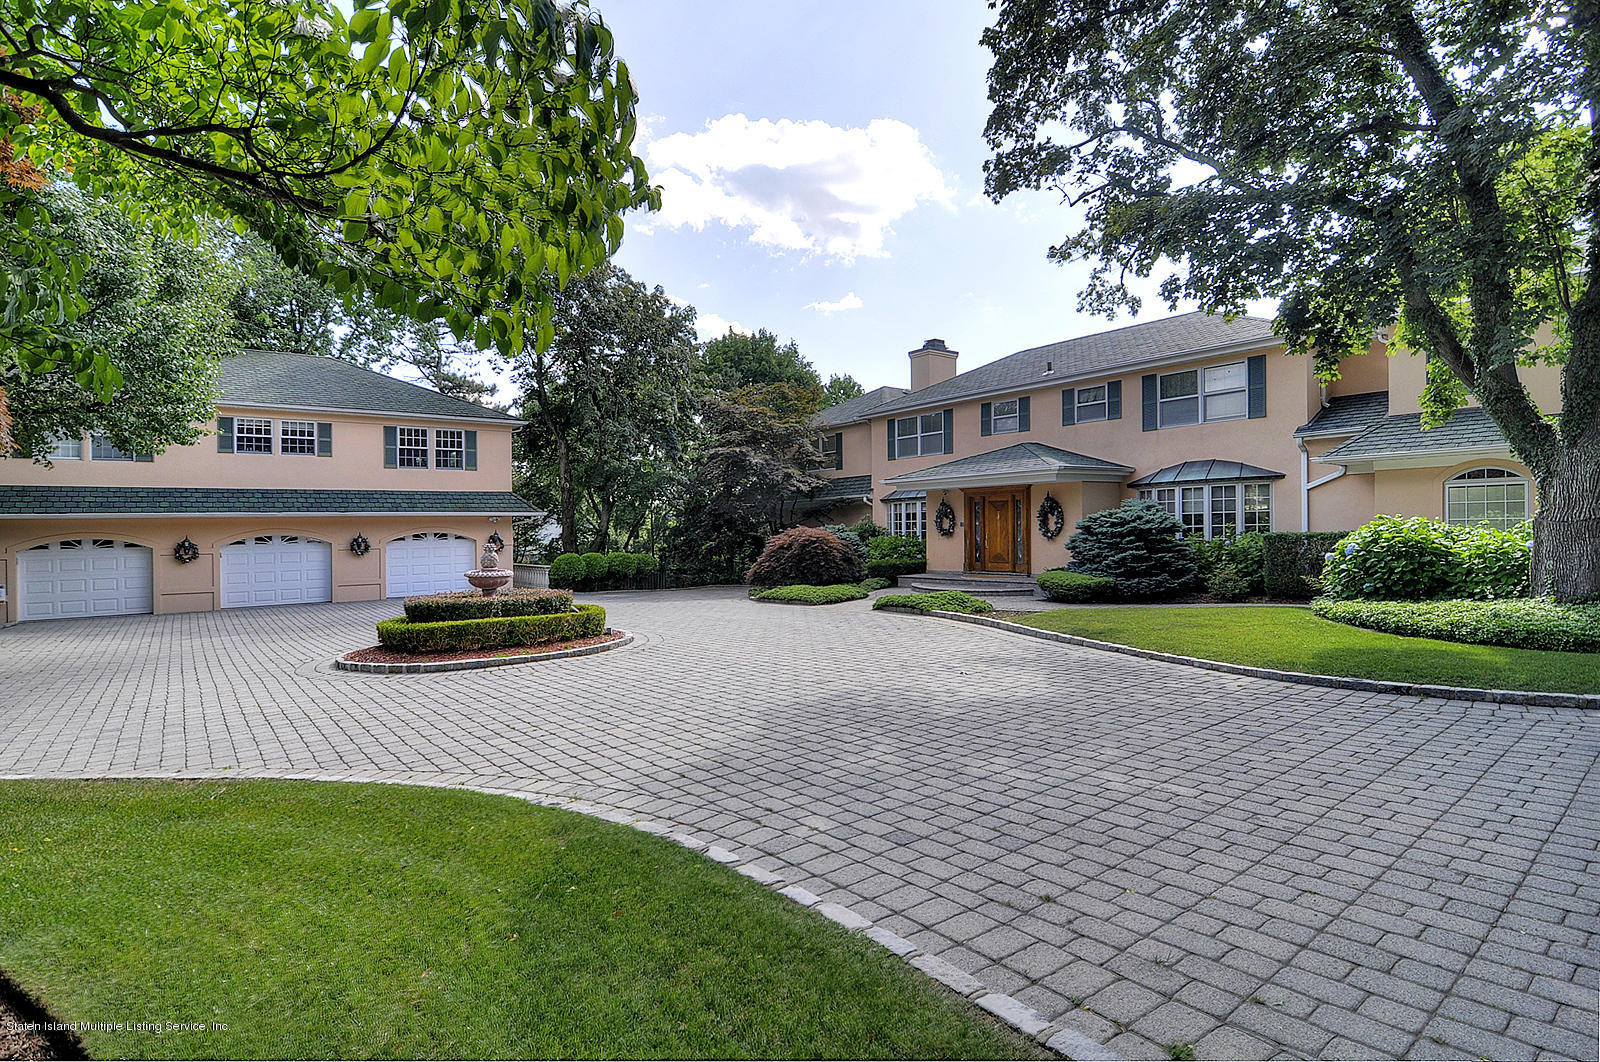 Single Family - Detached in Todt Hill - 738 Todt Hill Road  Staten Island, NY 10301